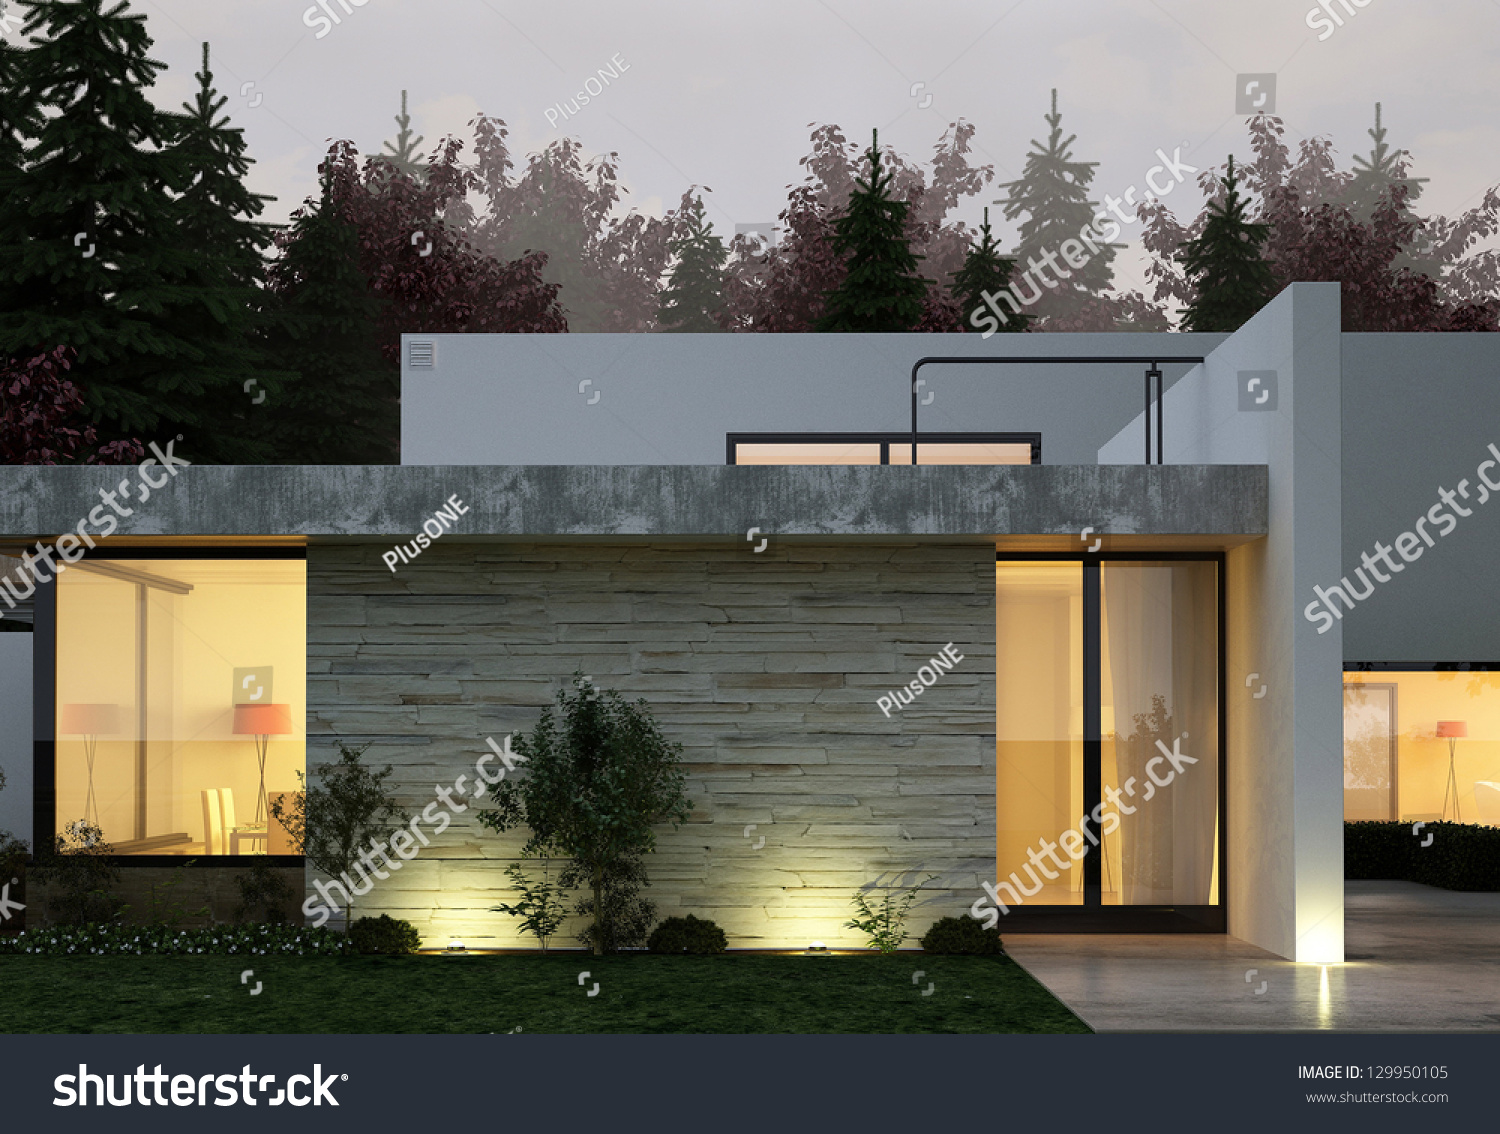 A 3d rendering of modern house facade at night stock photo for Modern house at night